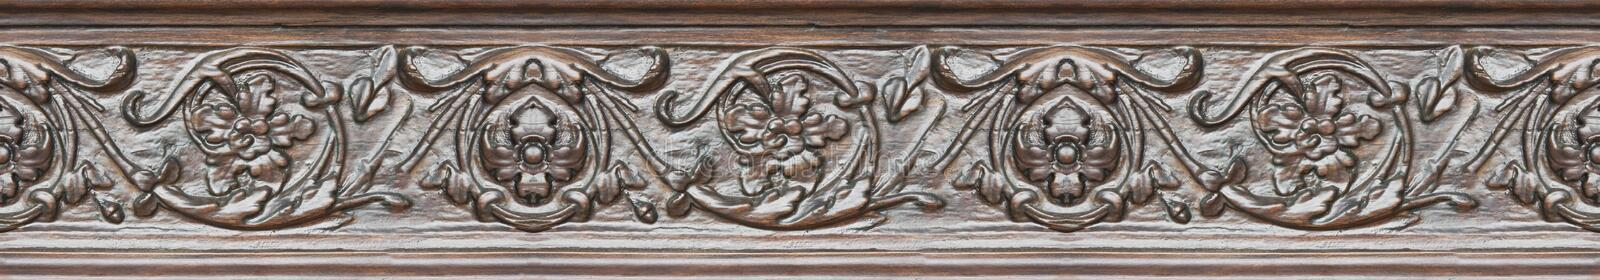 Detail of an old italian wooden carved frame with floral decorations - semless pattern.  royalty free stock photos